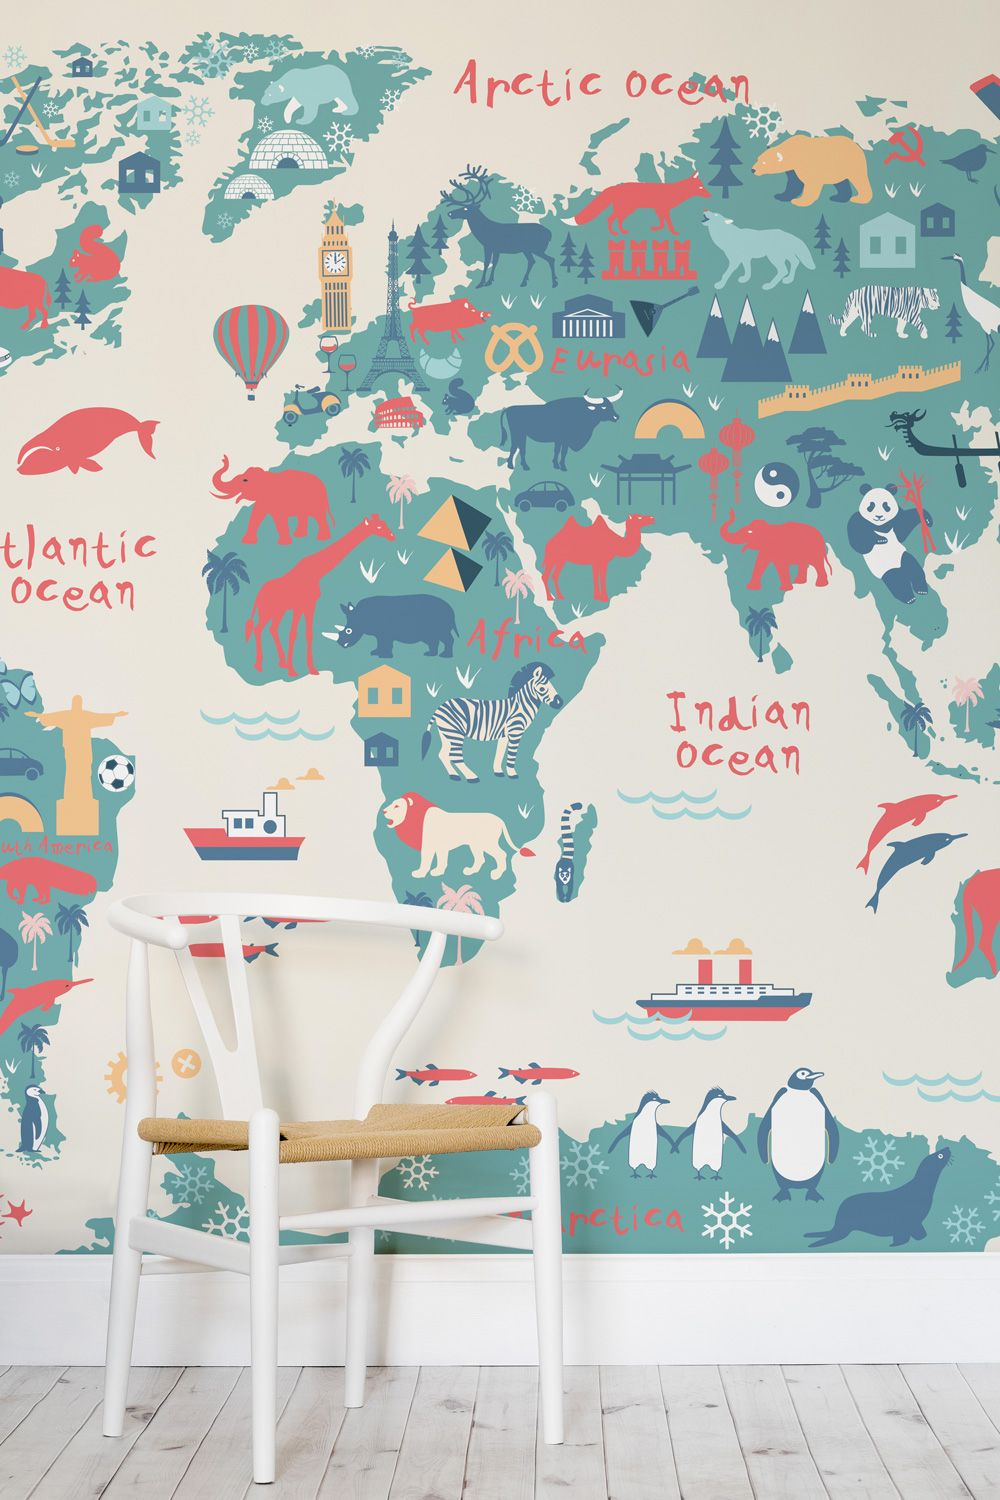 Educational map wallpapers the perfect kids bedroom idea murals explorer kids world map mural fun map wallpaper for children gumiabroncs Choice Image